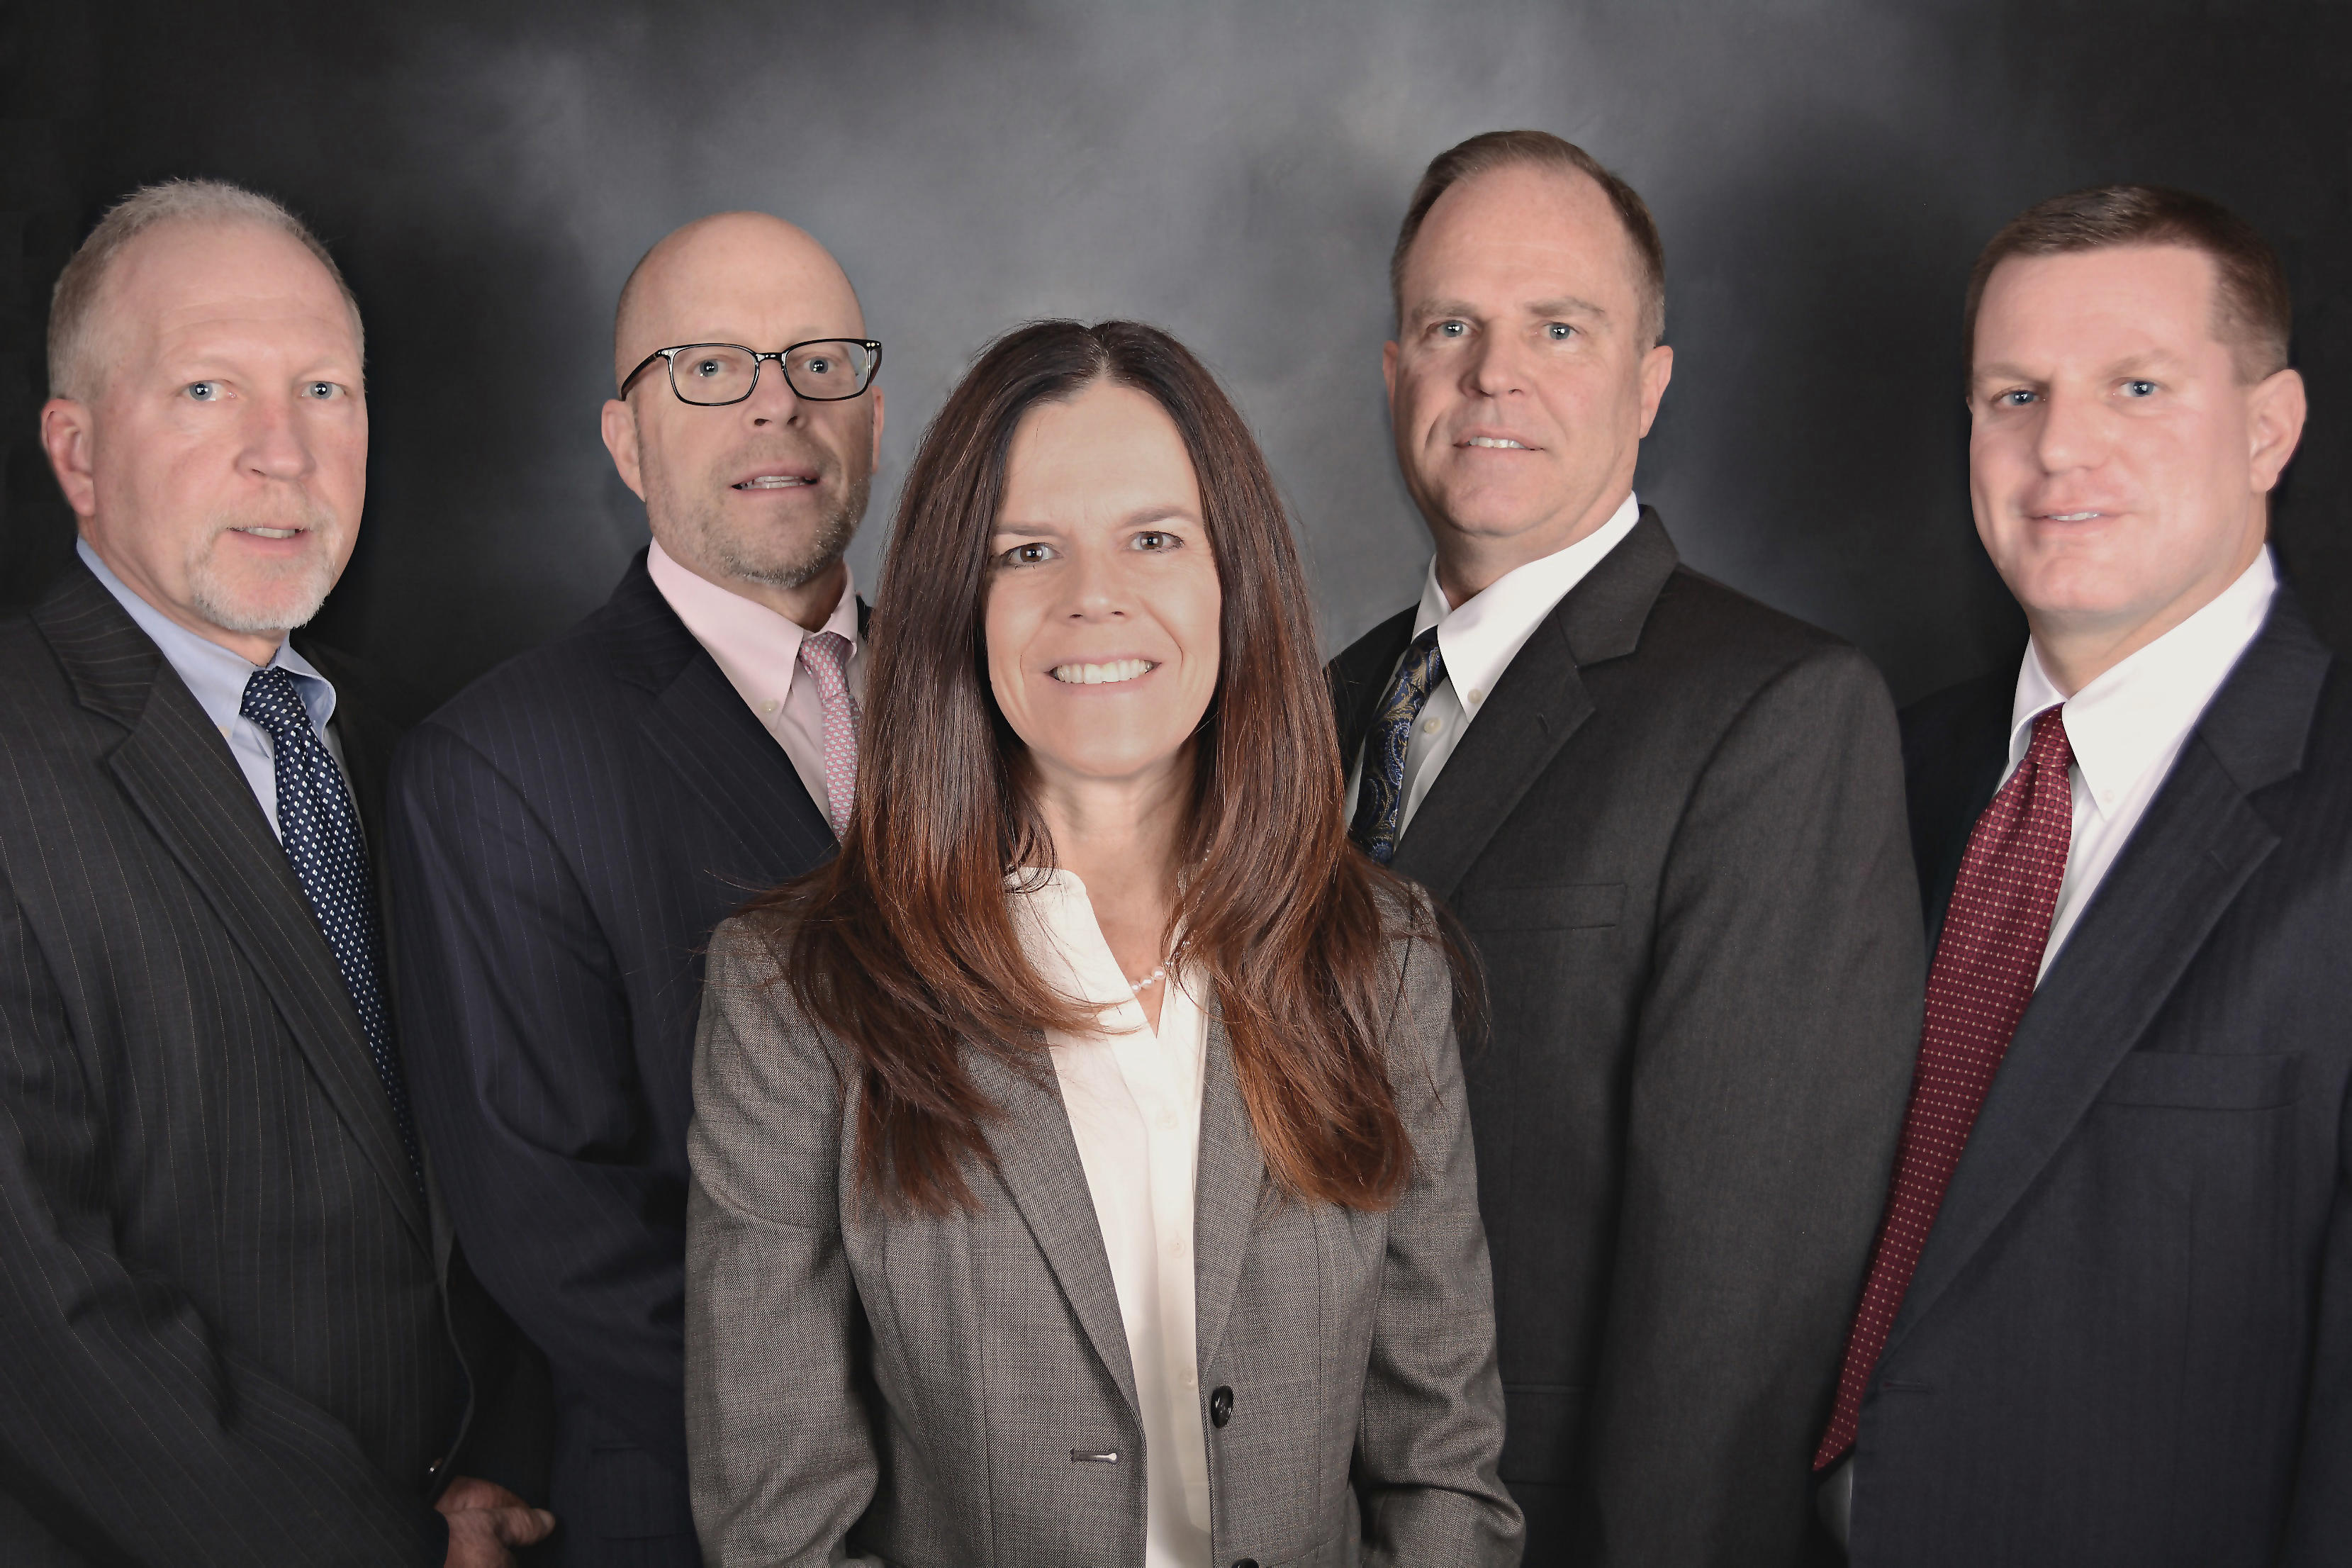 Jackson O'Keefe, LLP Wethersfield Law Firm image 0